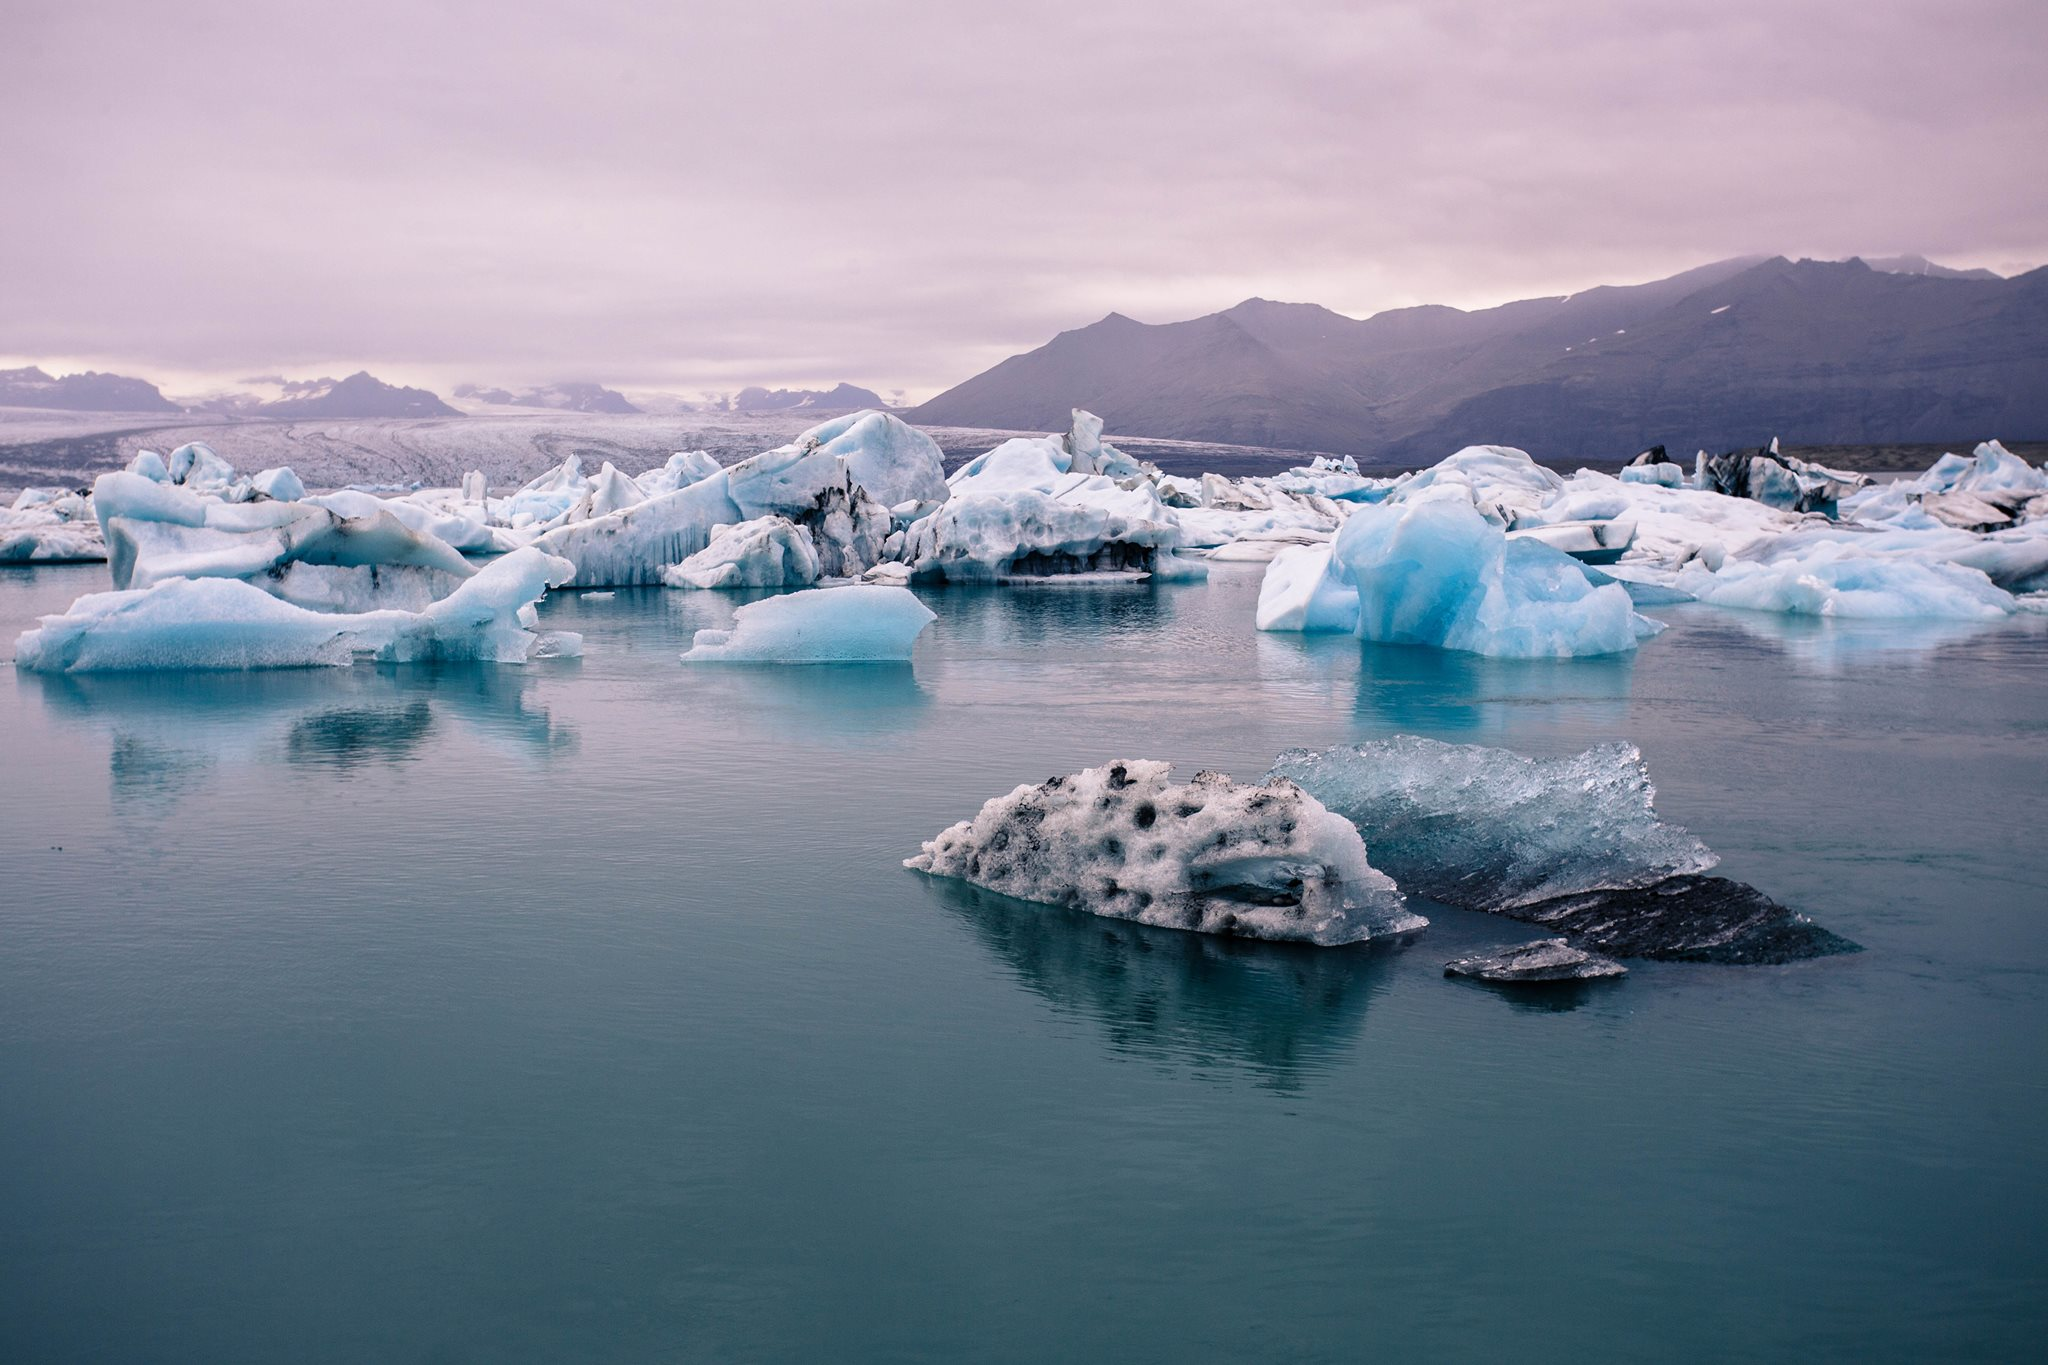 ocean ice snow thisworldexists dean chytraus iceland this world exists